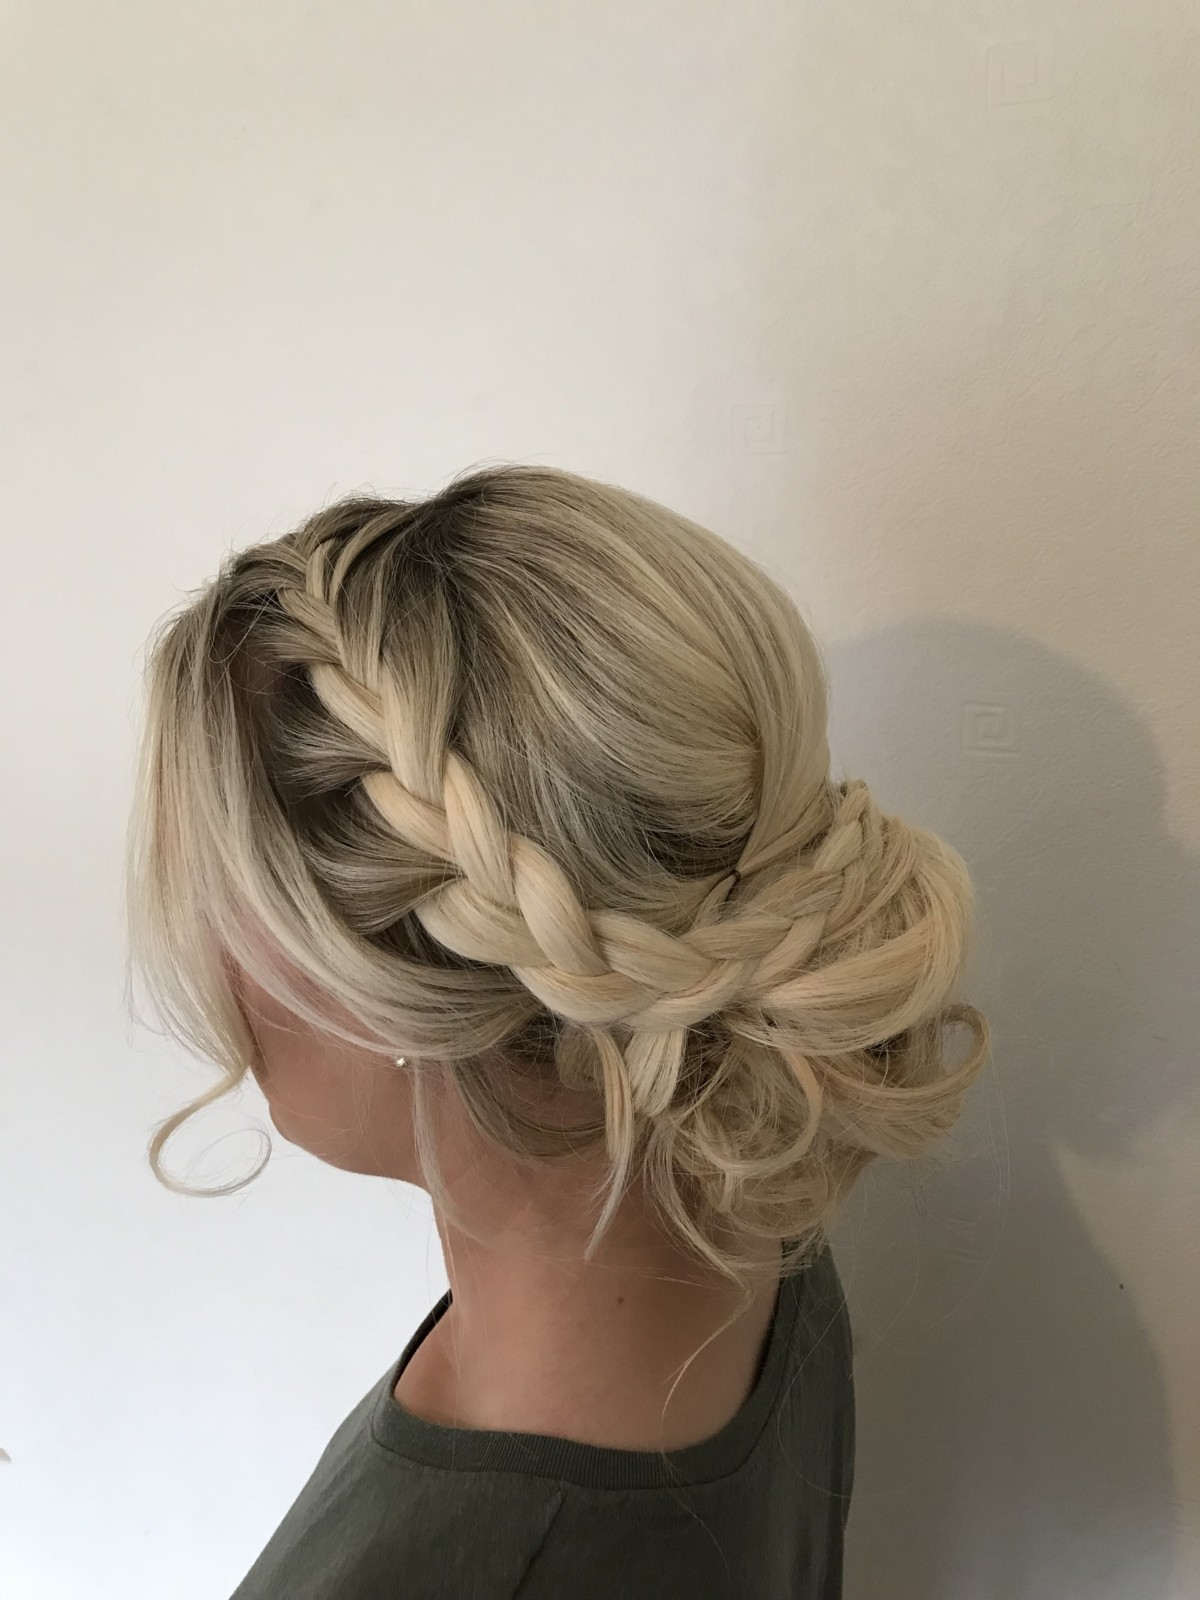 Wedding hair specialist bridal hairdresser for surrey london kent recommended junglespirit Image collections